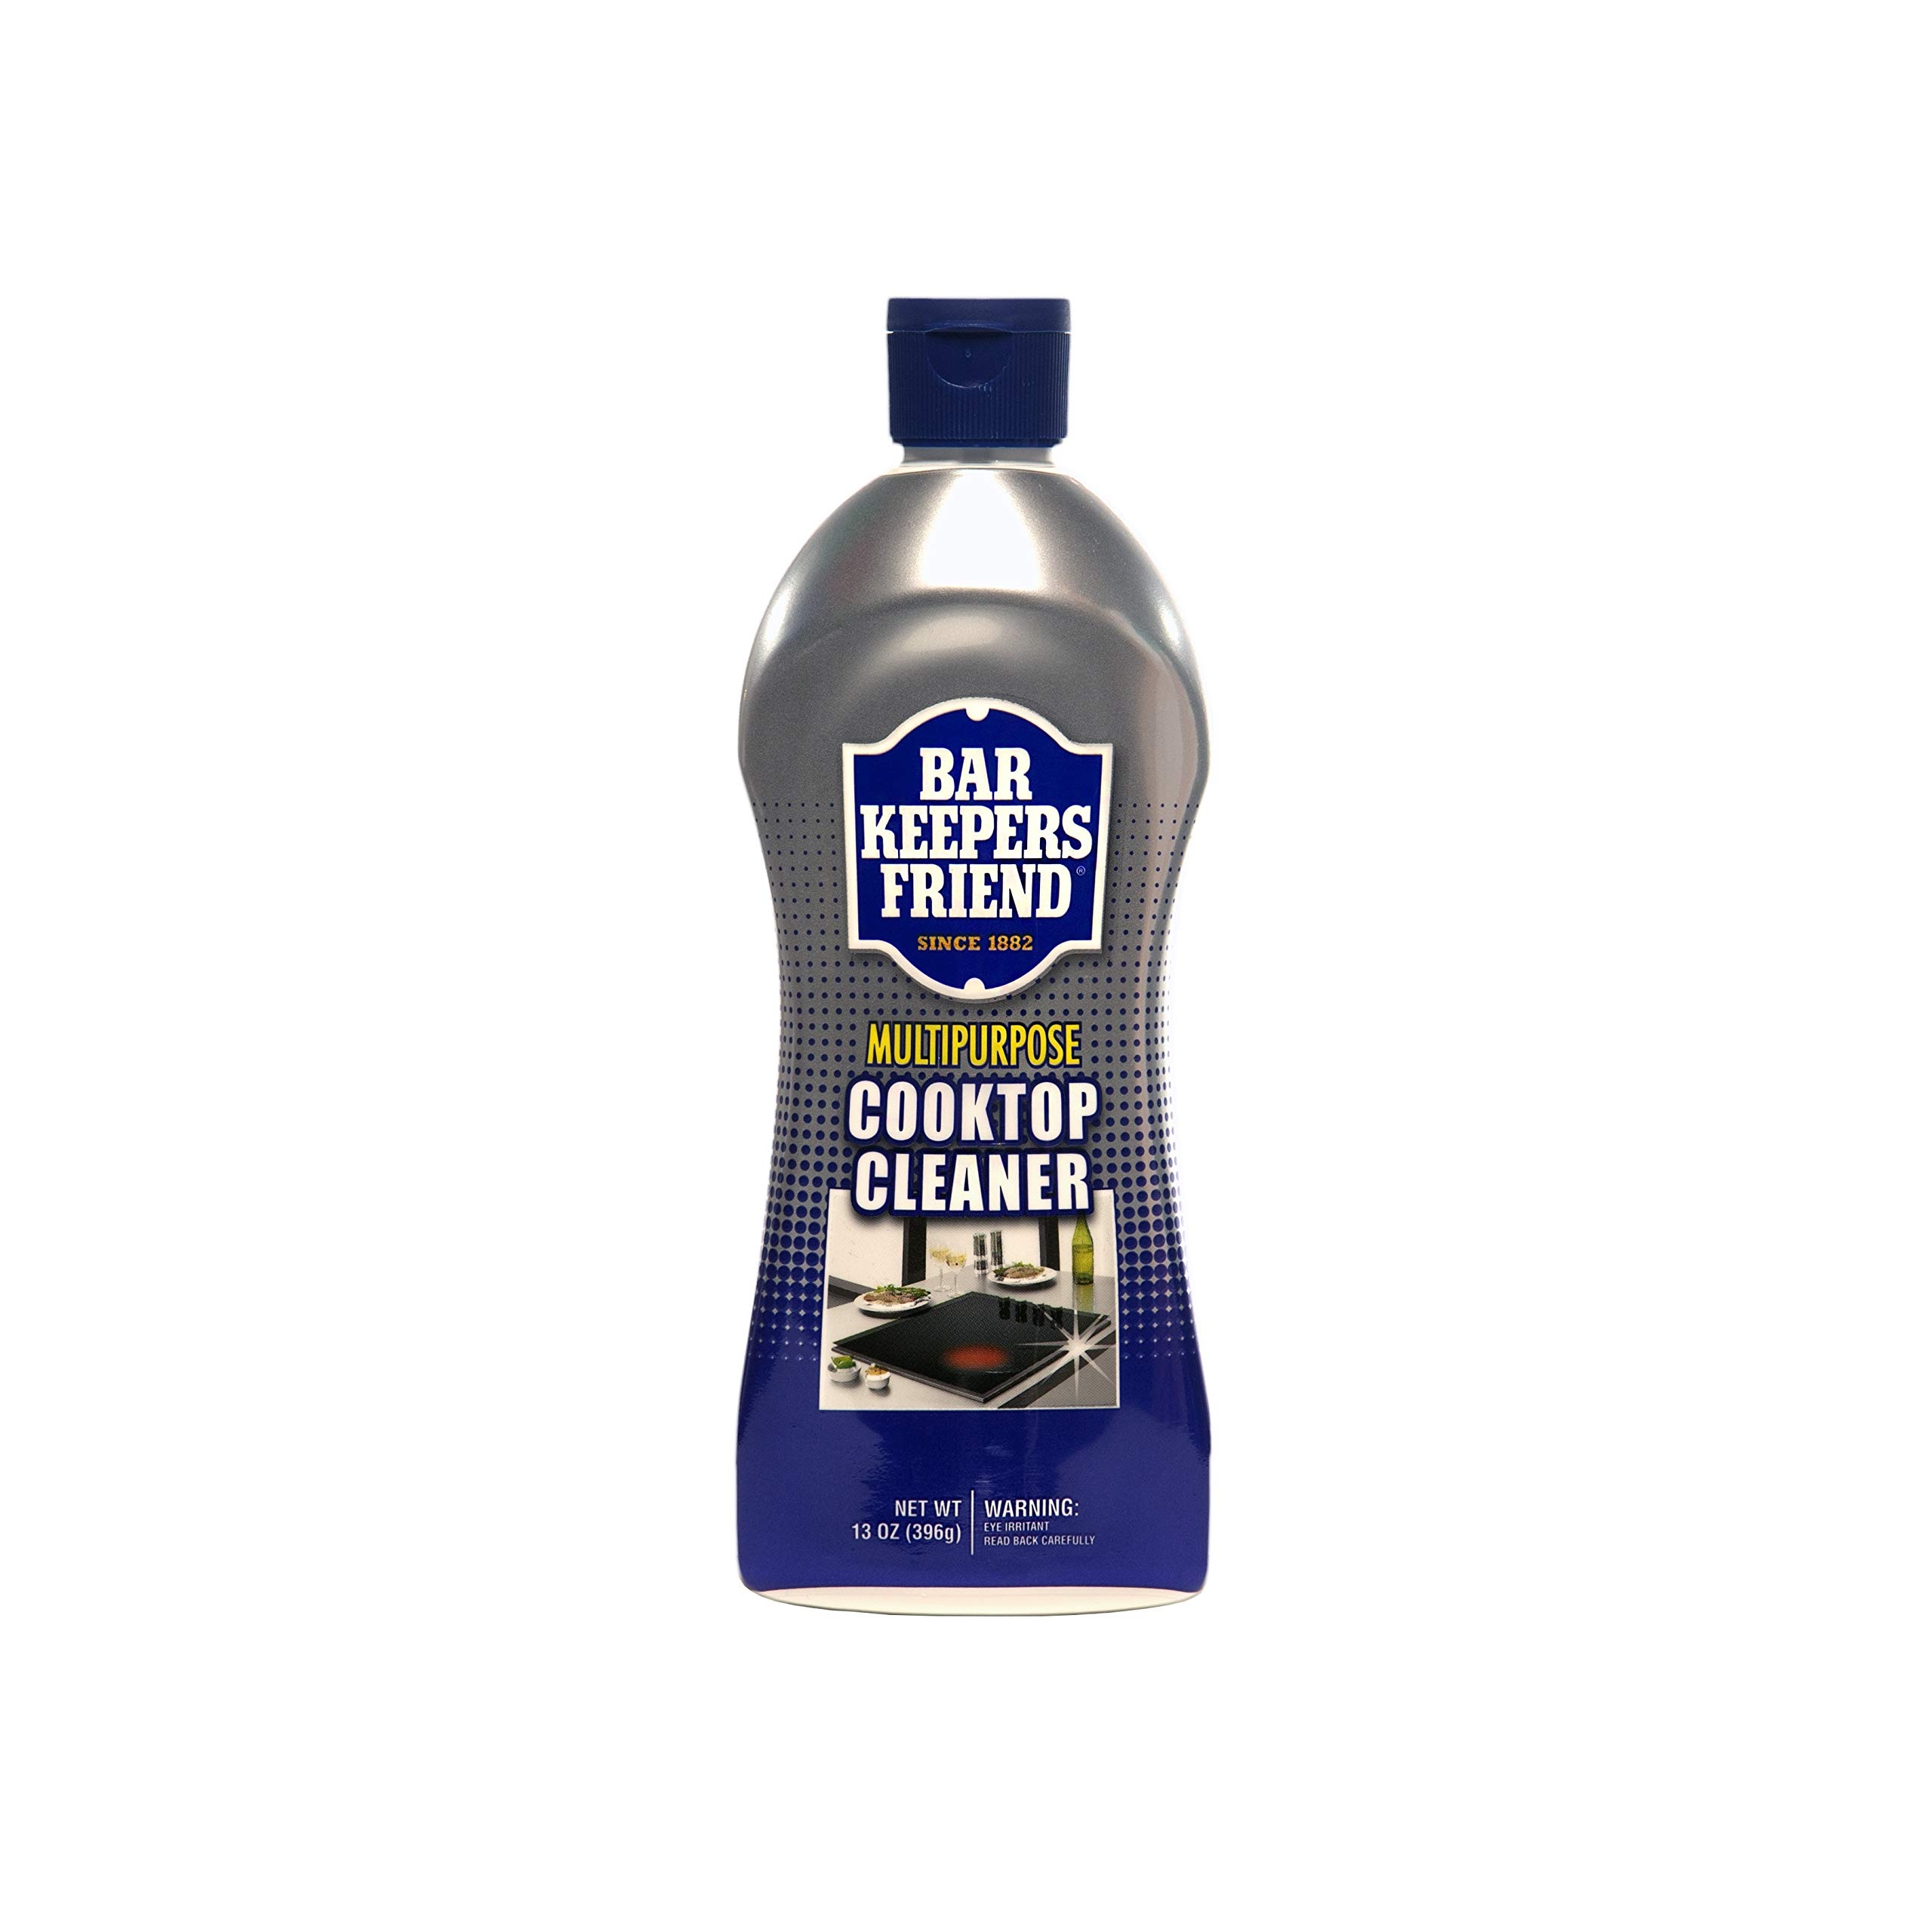 Bar Keepers Friend Multipurpose Cooktop Cleaner (13 oz) - Liquid Stovetop Cleanser - Safe for Use on Glass Ceramic…